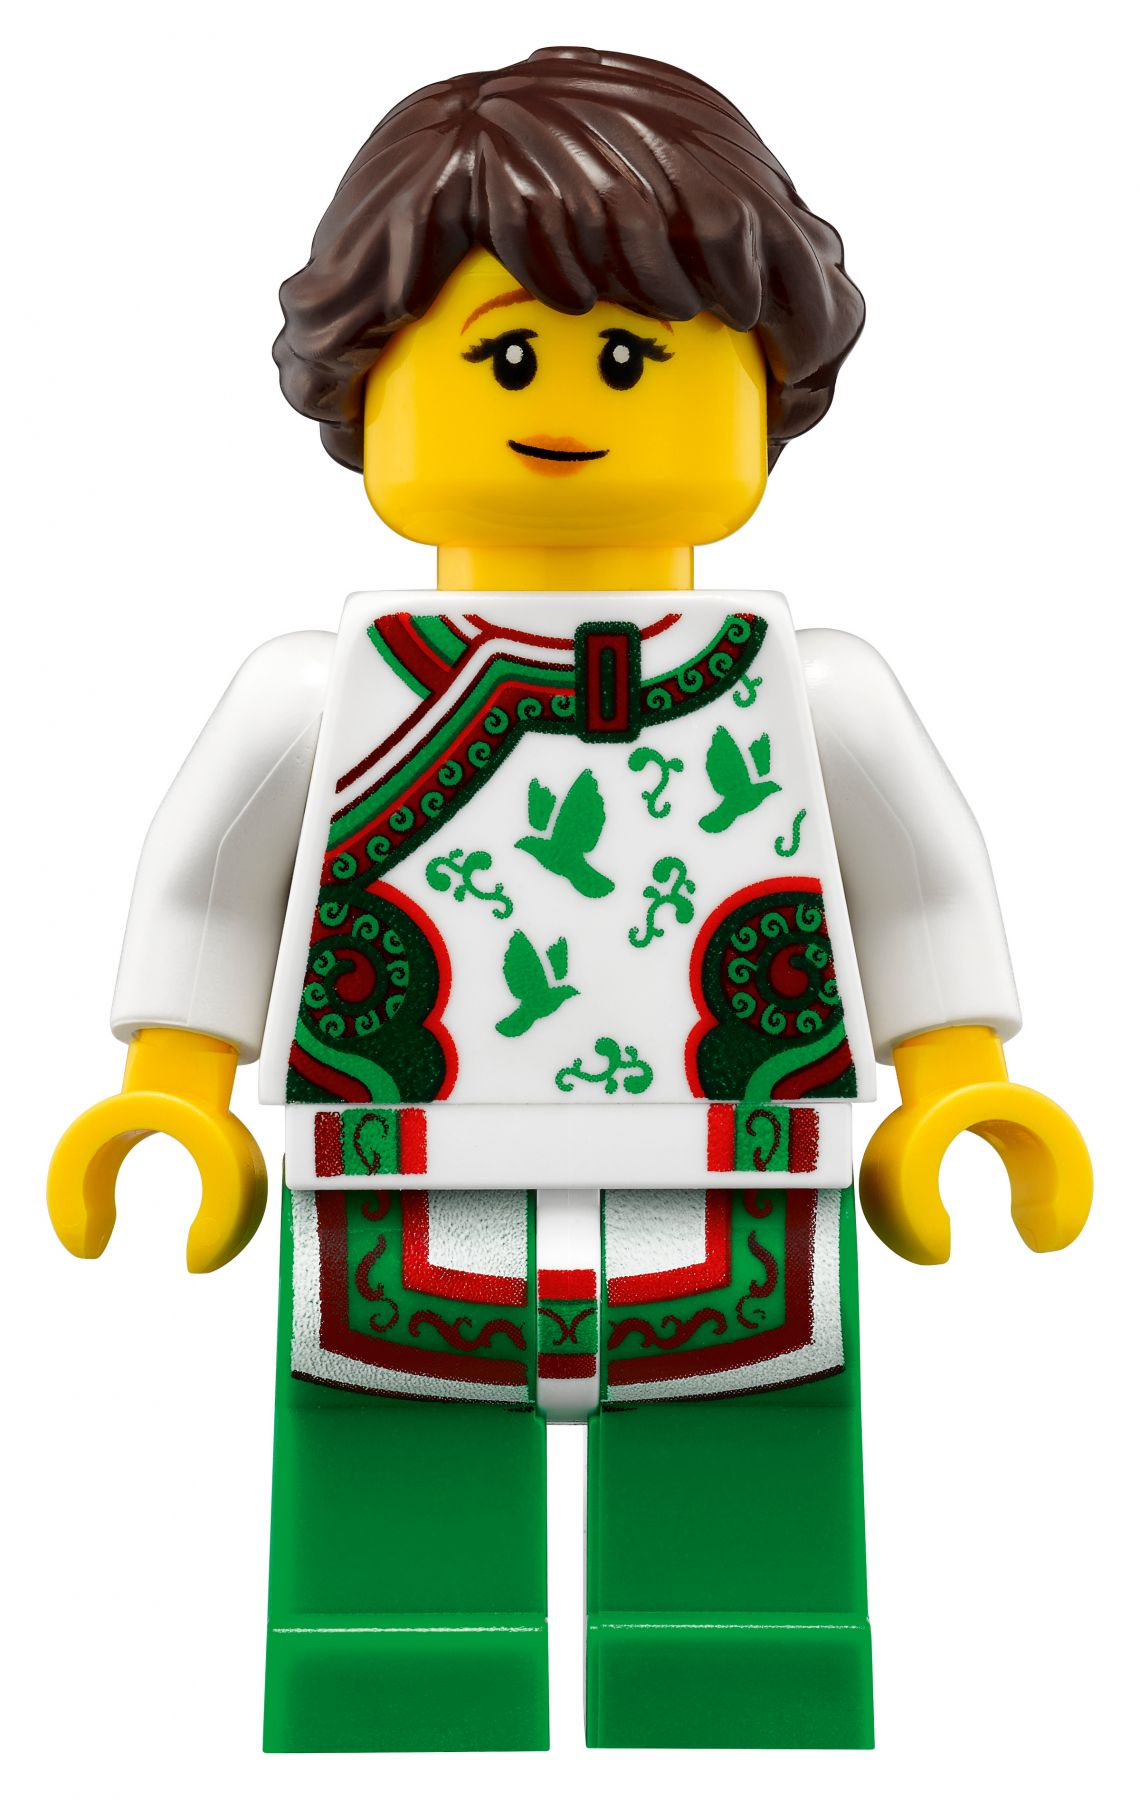 LEGO The LEGO Ninjago Movie 70620 Ninjago City LEGO_70620_alt21.jpg